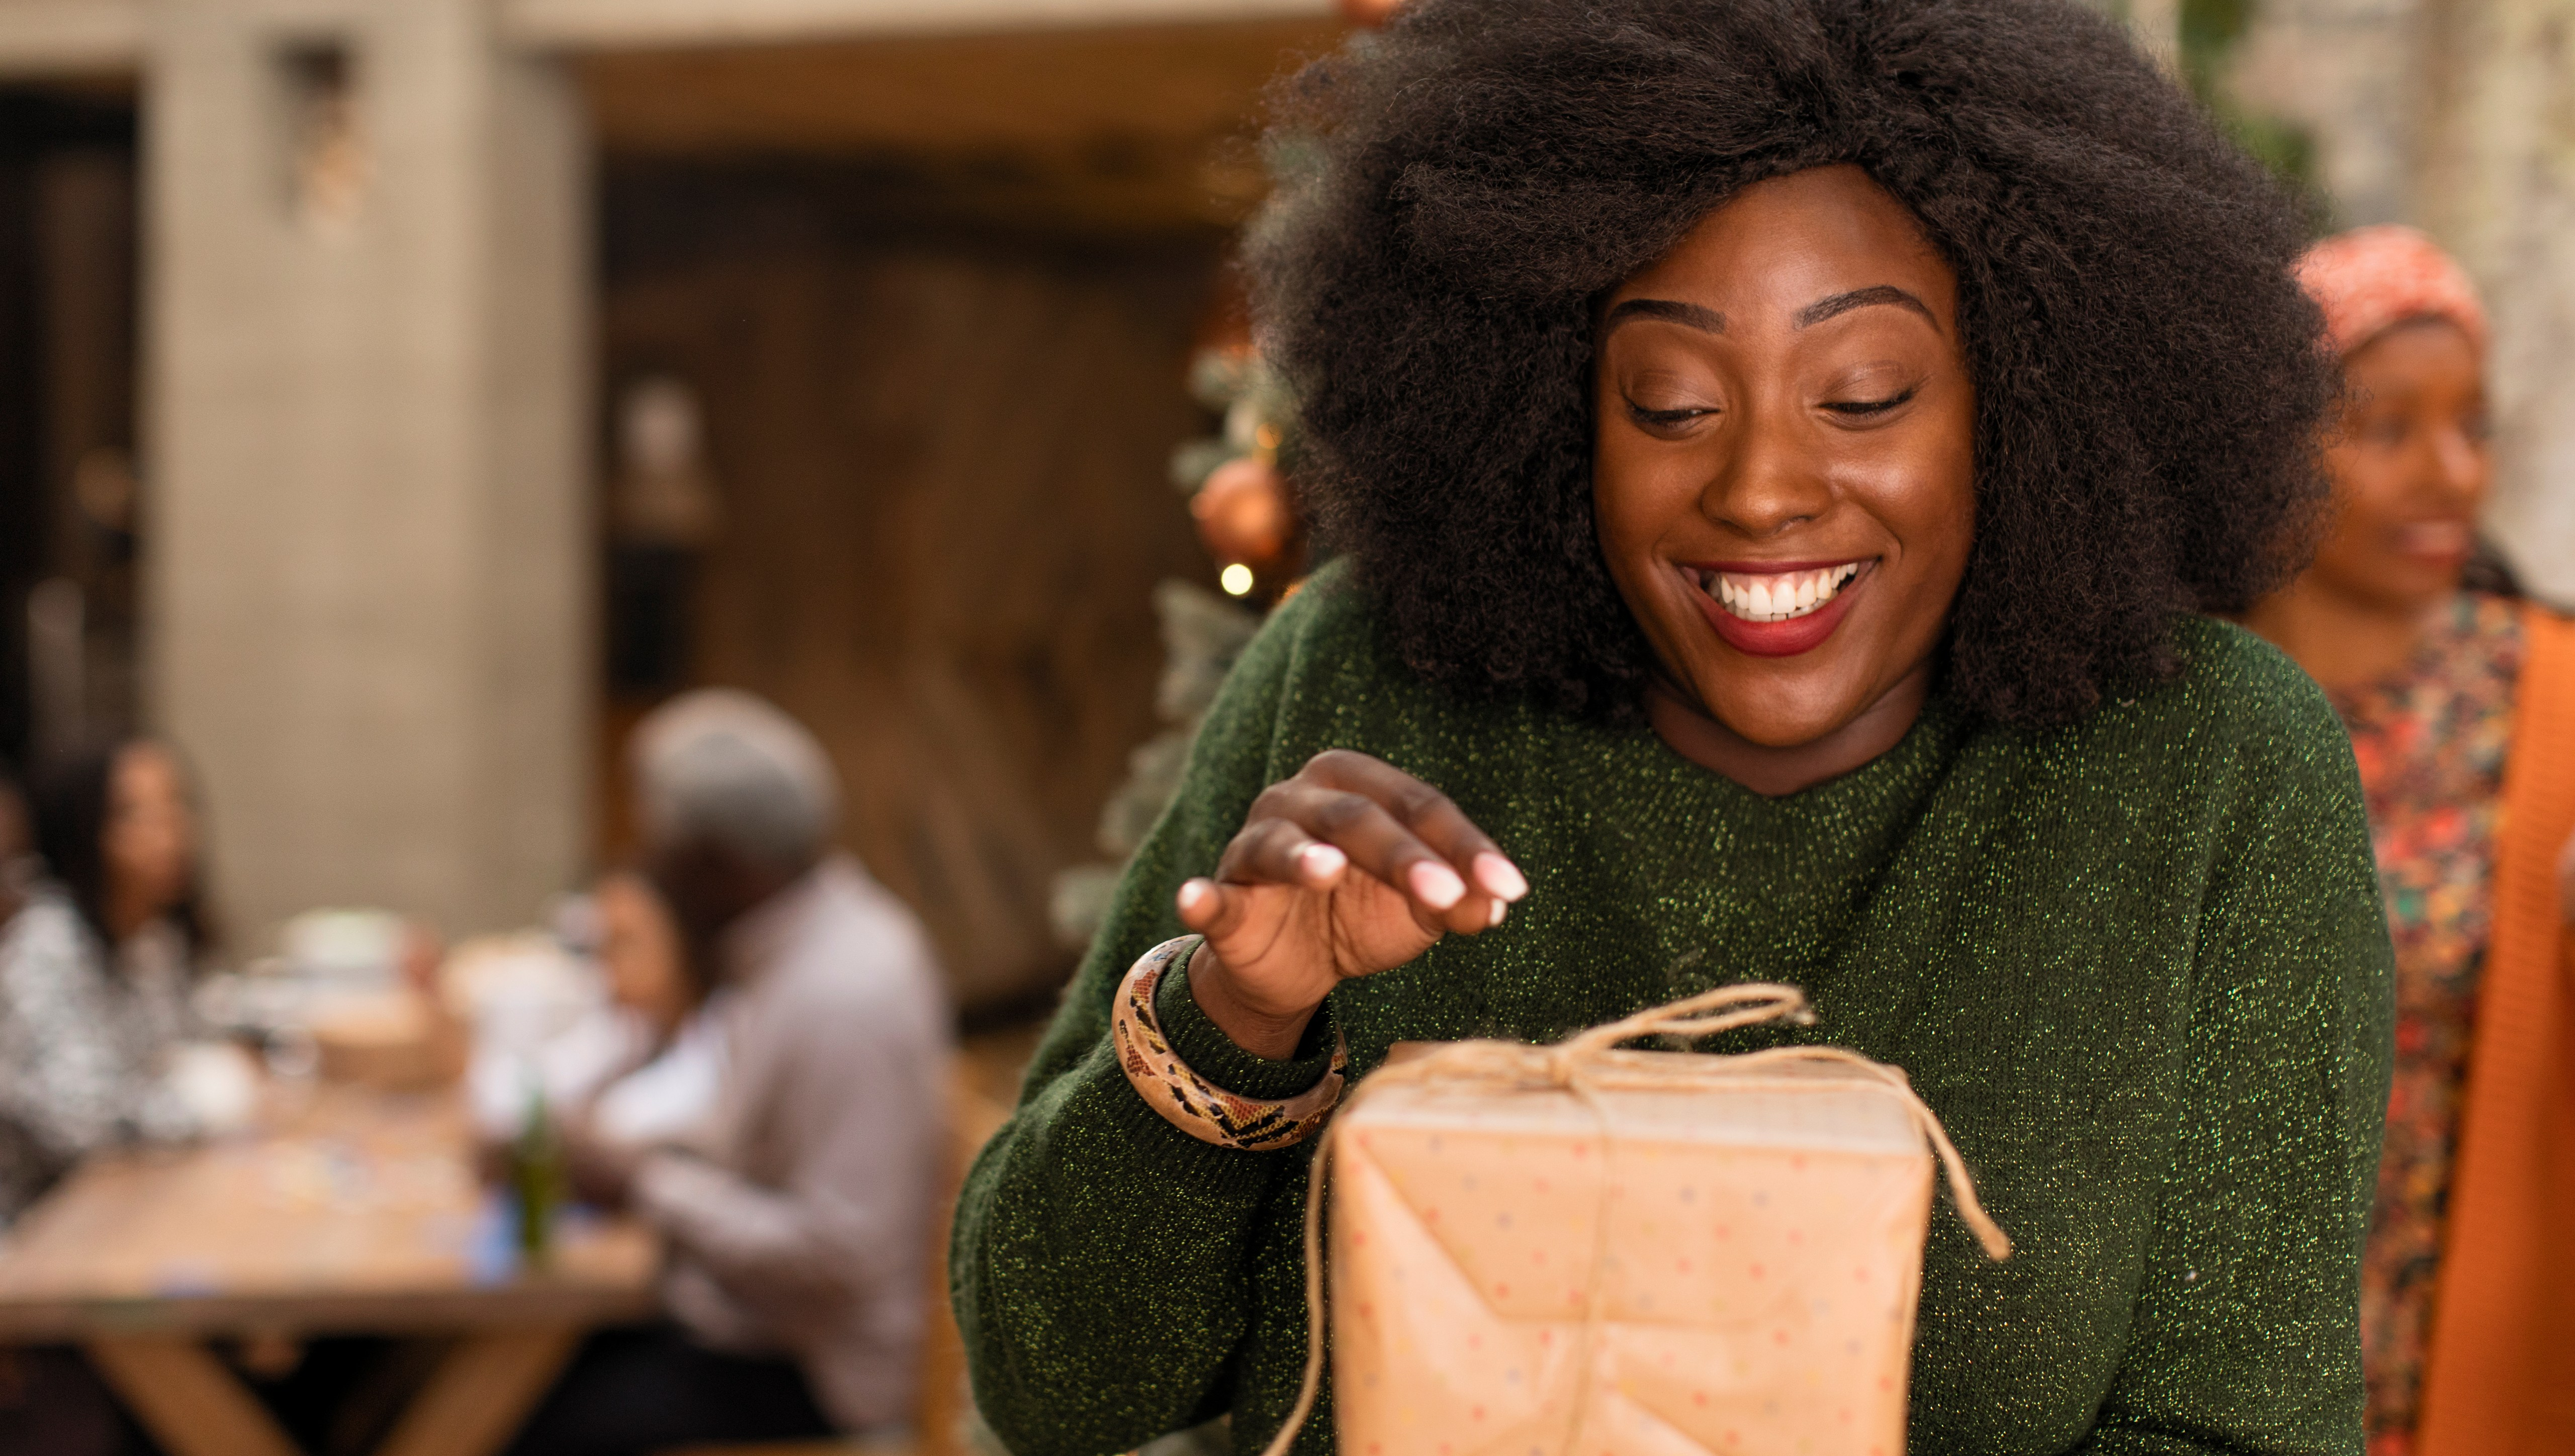 woman opening gifts